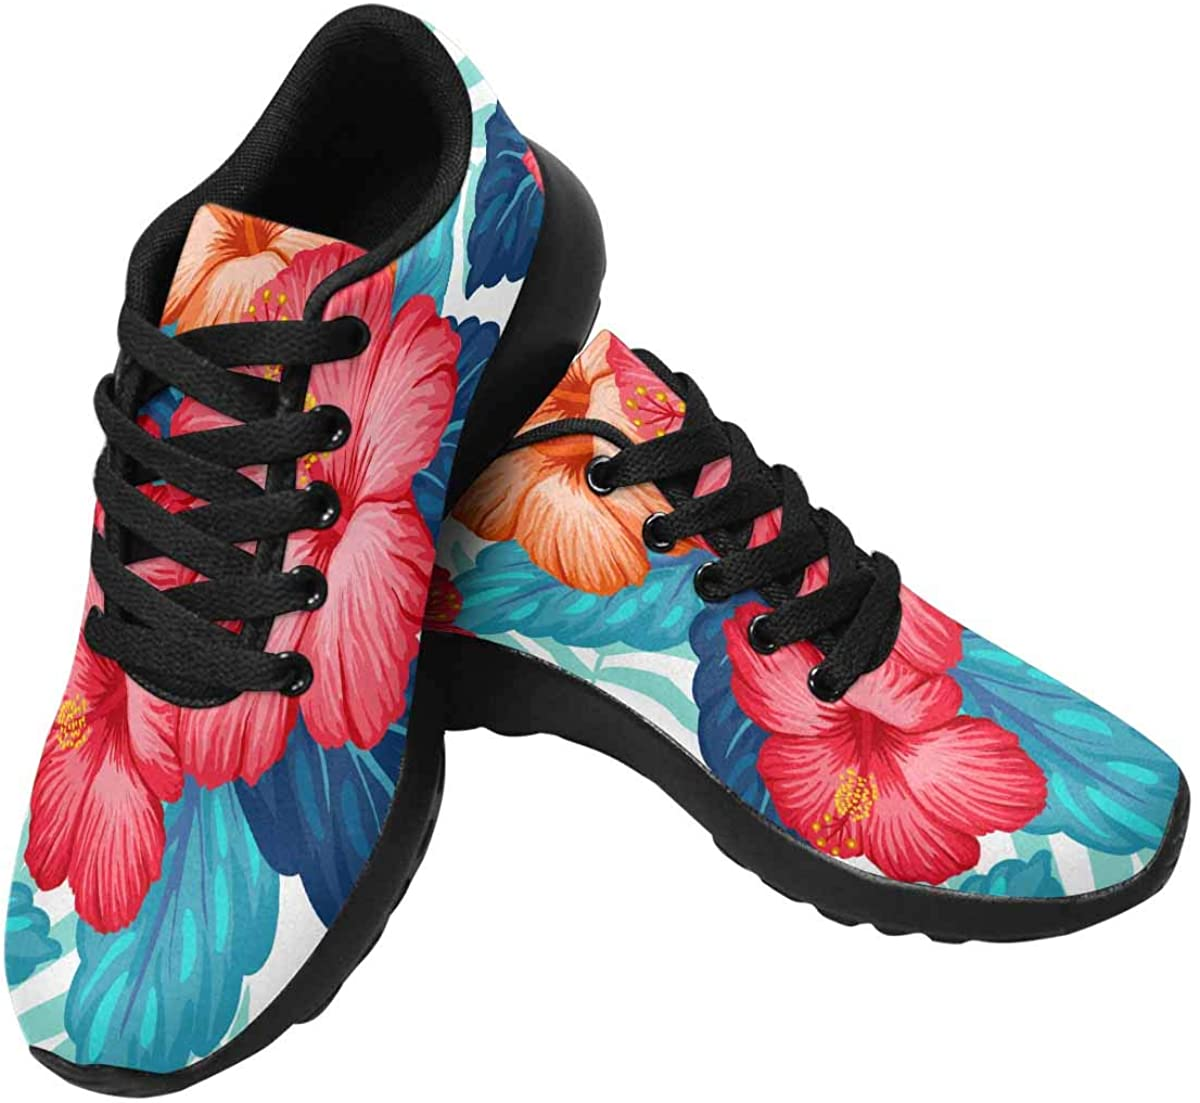 INTERESTPRINT Women s Running Shoes Lightweight Non-Slip Breathable Walking Shoes US6-US15